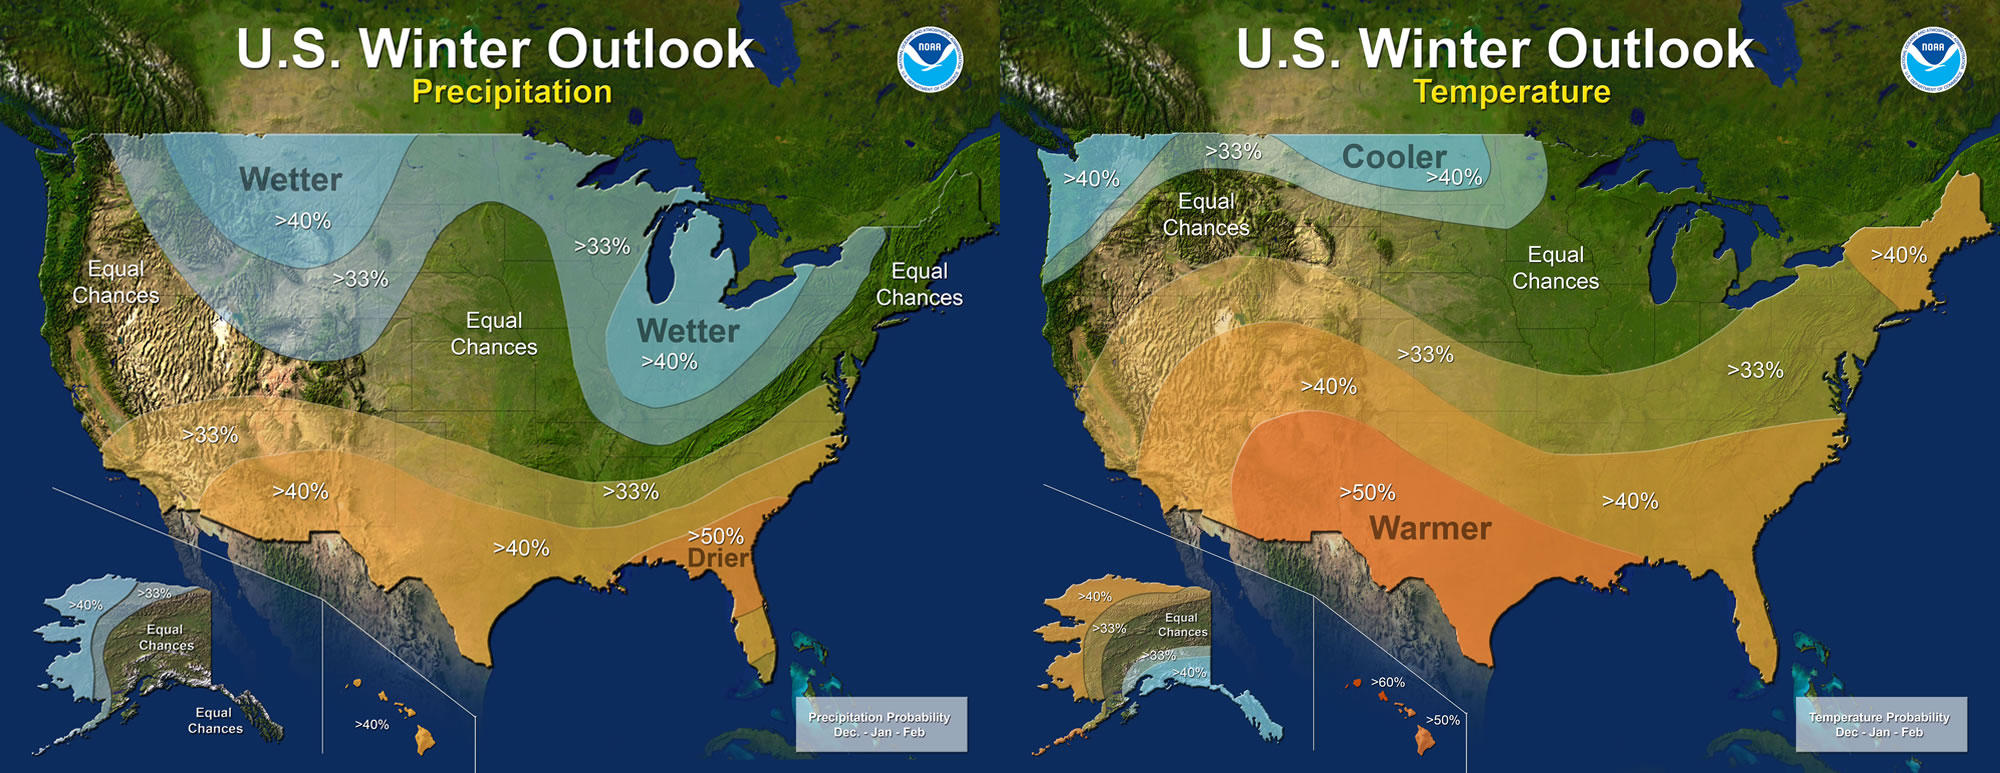 NOAA Predicts Winter Is Going to Be Warmer Than Usual for Most of the United States NOAA Predicts Winter Is Going to Be Warmer Than Usual for Most of the United States new picture